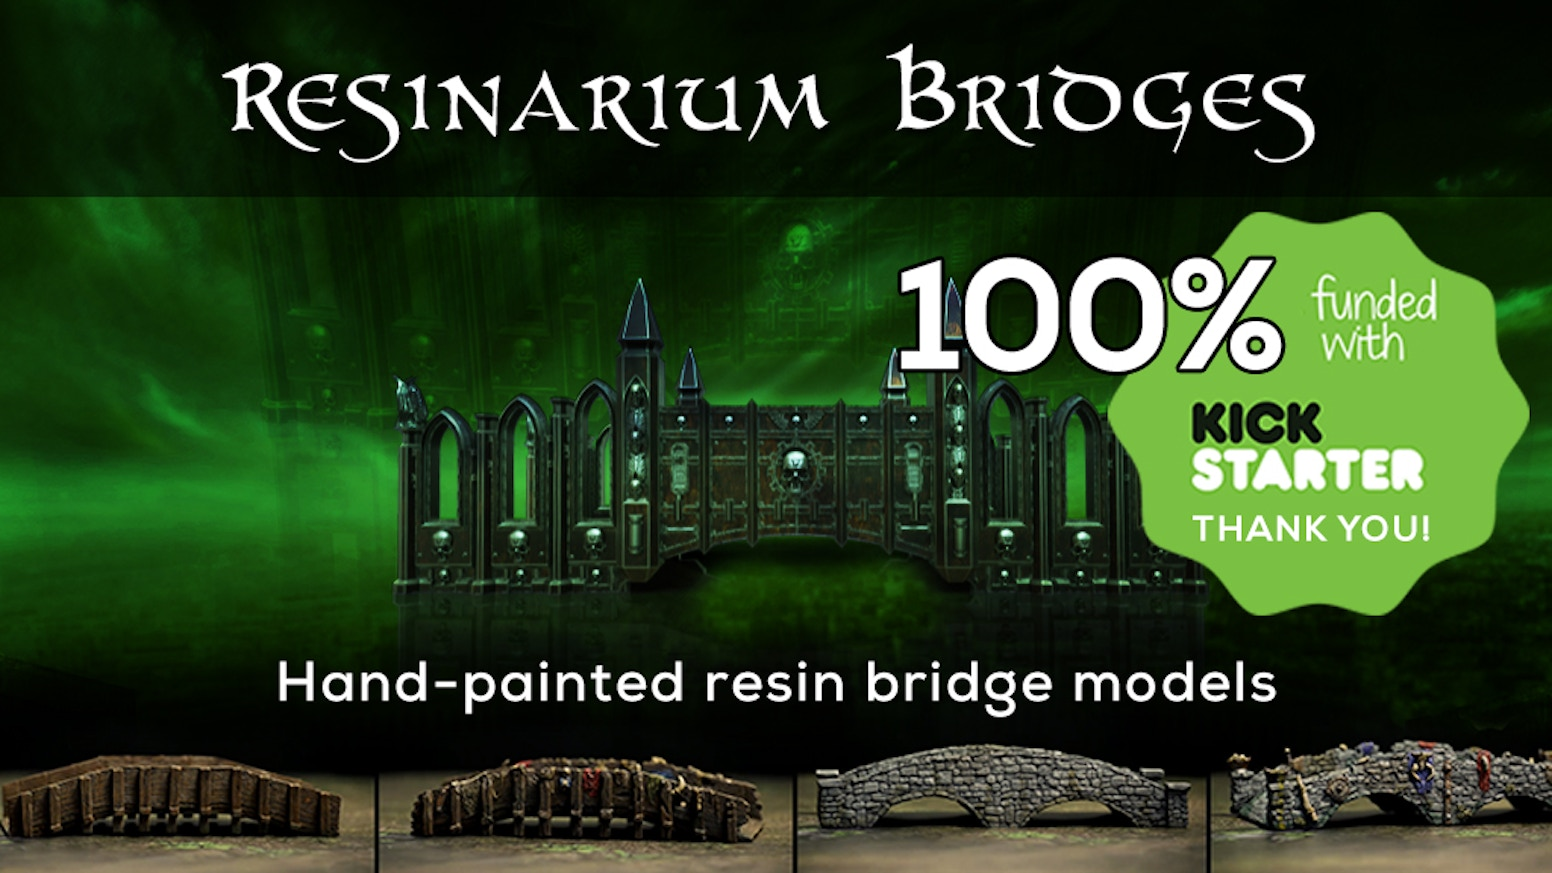 Superb quality resin bridge scenery for heroic scale games, hand-painted and ready to be deployed out of the box!